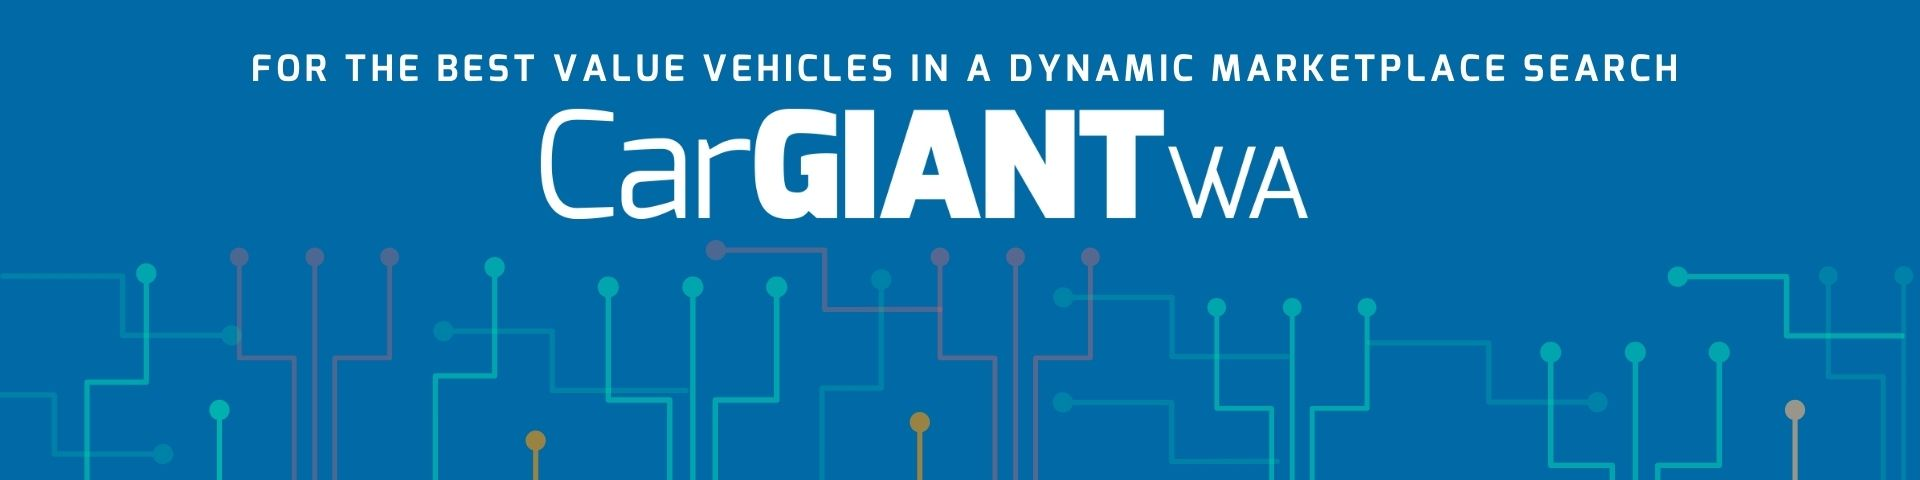 Car-Giant-WA-for-the-Best-value-vehicles-in-a-dynamic-marketplace